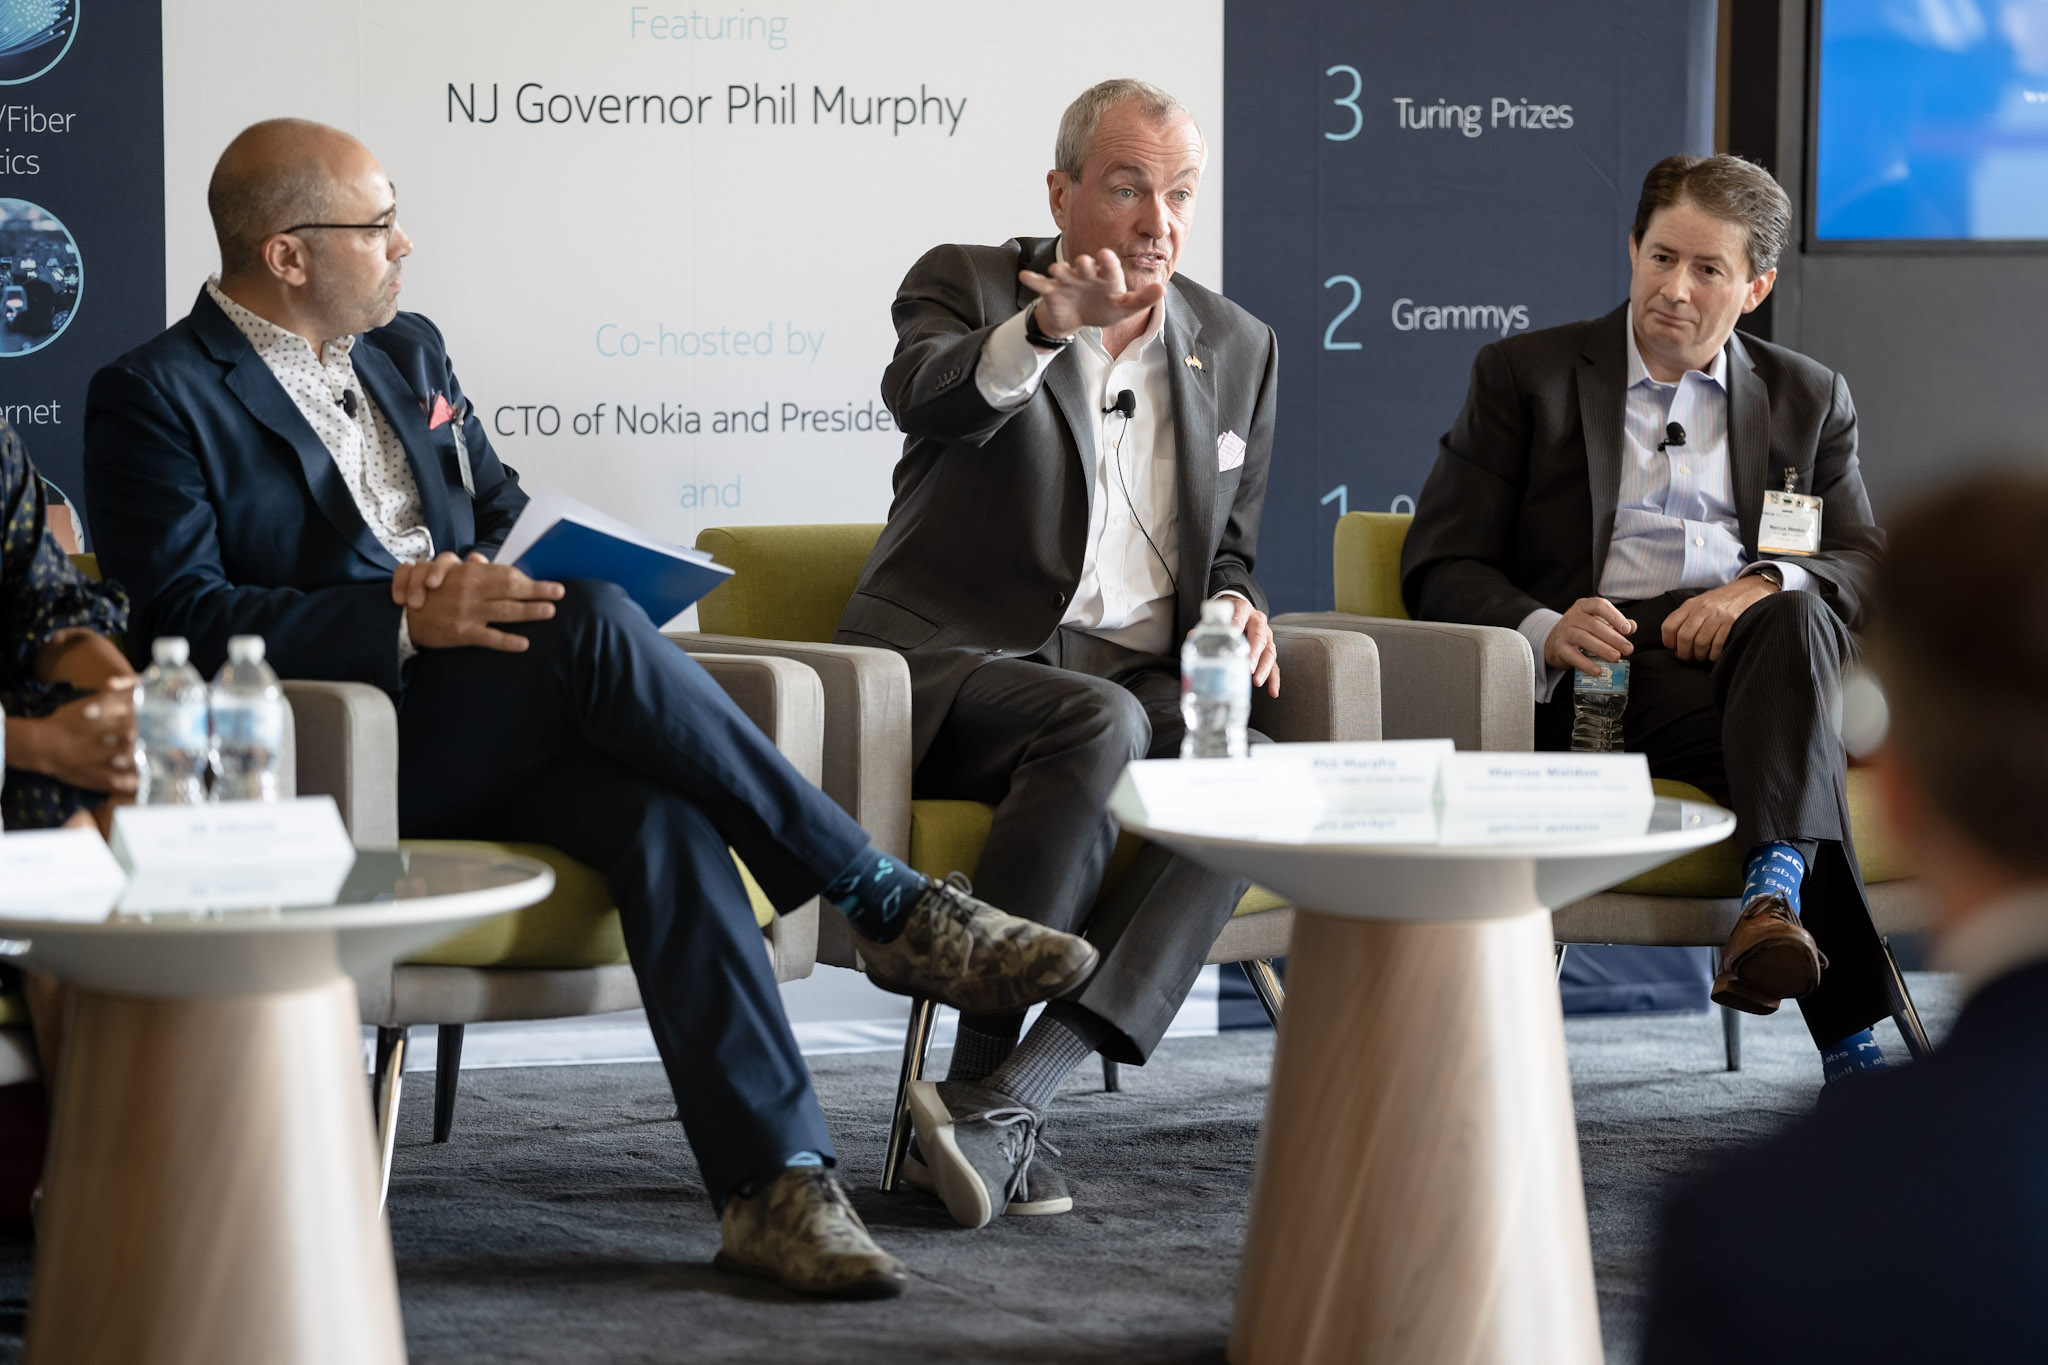 From left, NJ Tech Council CEO Aaron Price, Gov. Phil Murphy and Nokia Bell Labs President Marcus Weldon take part in an innovation panel event at Nokia Bell Labs in Murray Hill on Aug. 8, 2019.